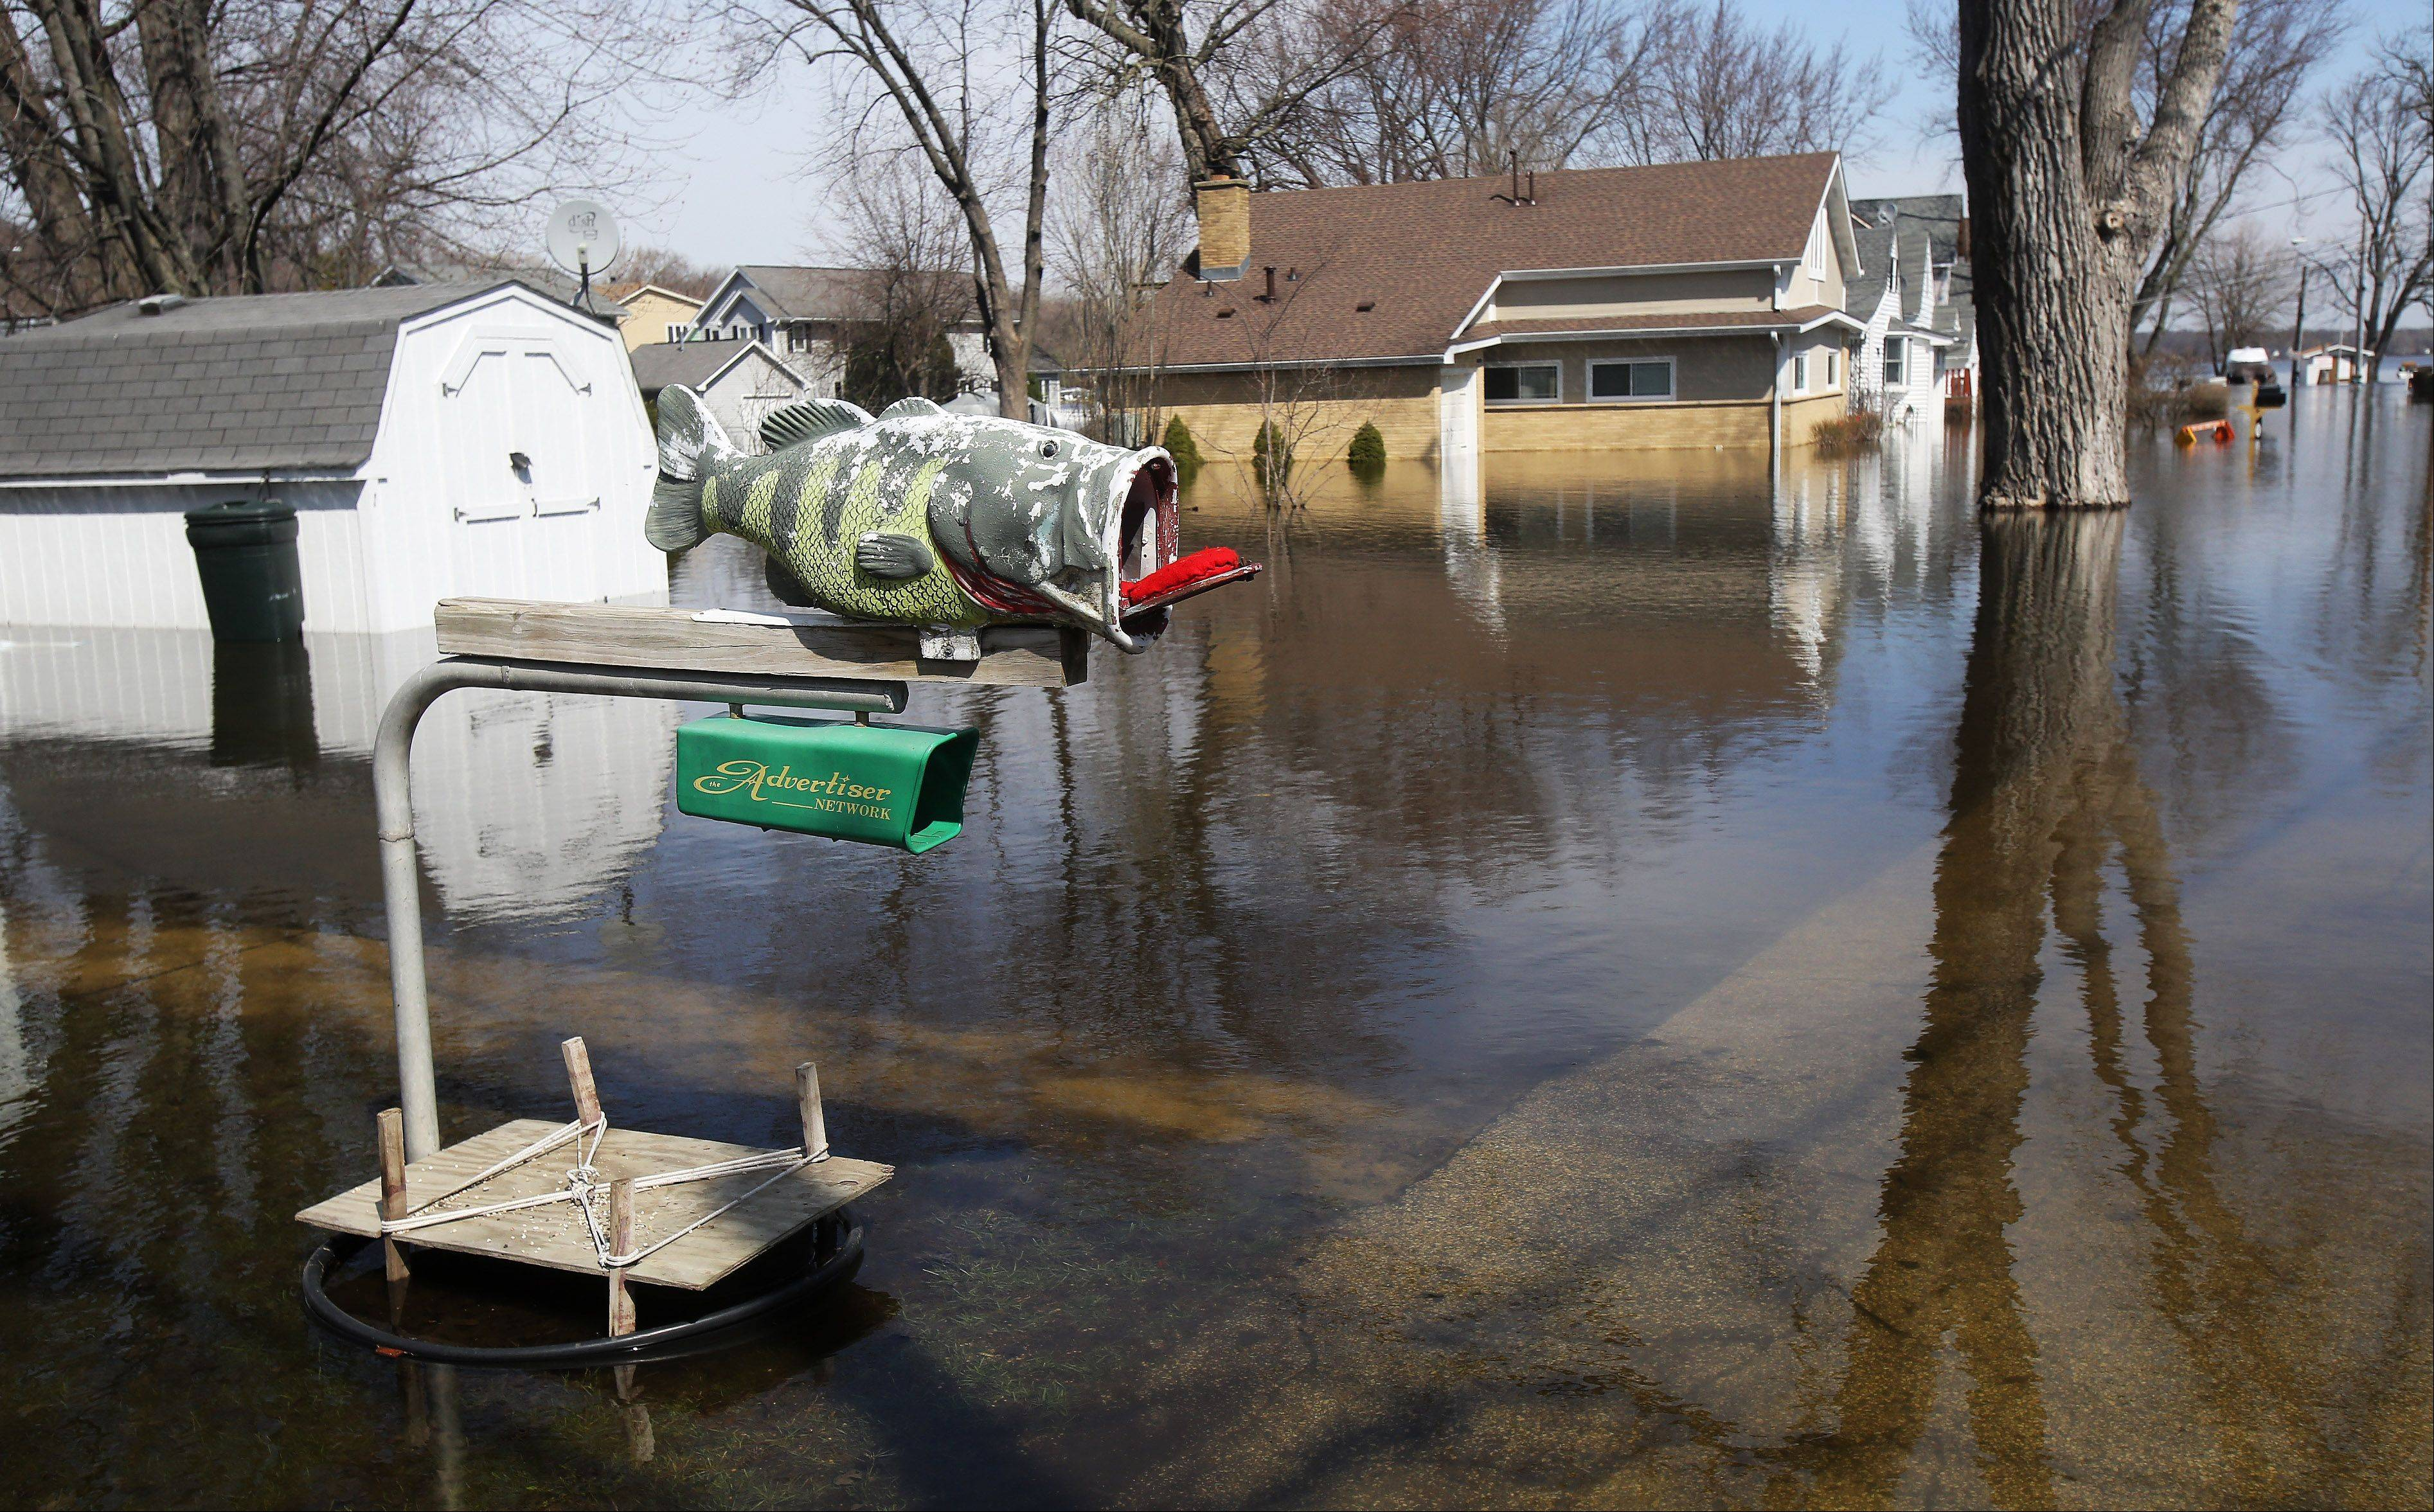 Fox Lake was among the communities badly hit by last month's floods.